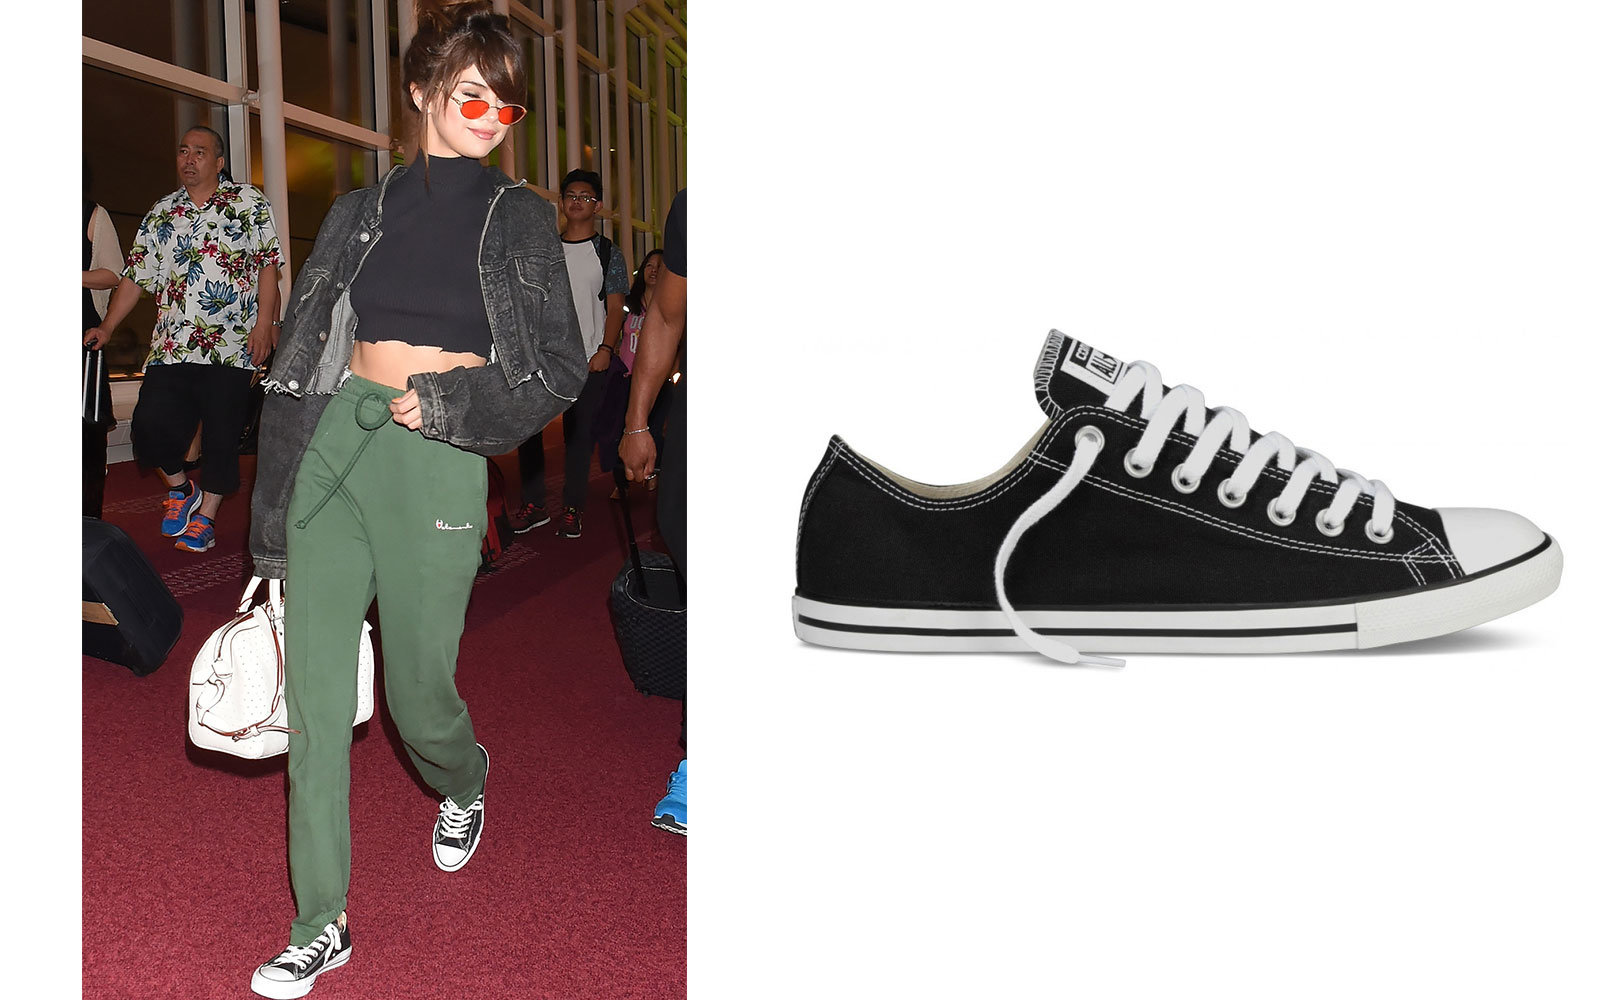 cf0b9fb85a7 The Stylish Comfy Shoes That Celebrities Wear for Traveling